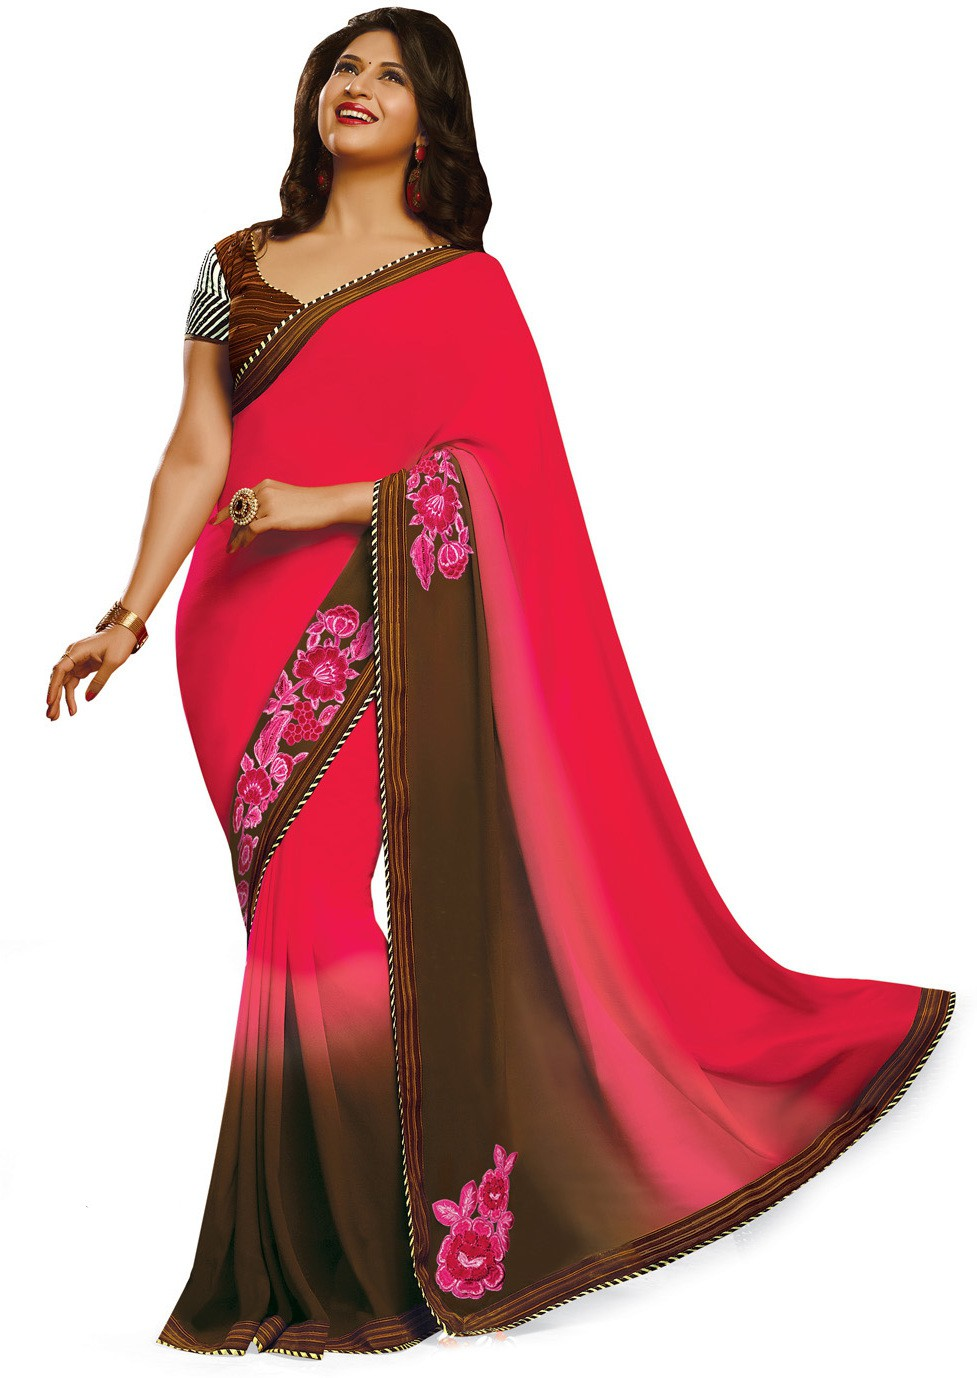 Indianbeauty Self Design, Embroidered Bollywood Pure Georgette Saree(Red, Brown)